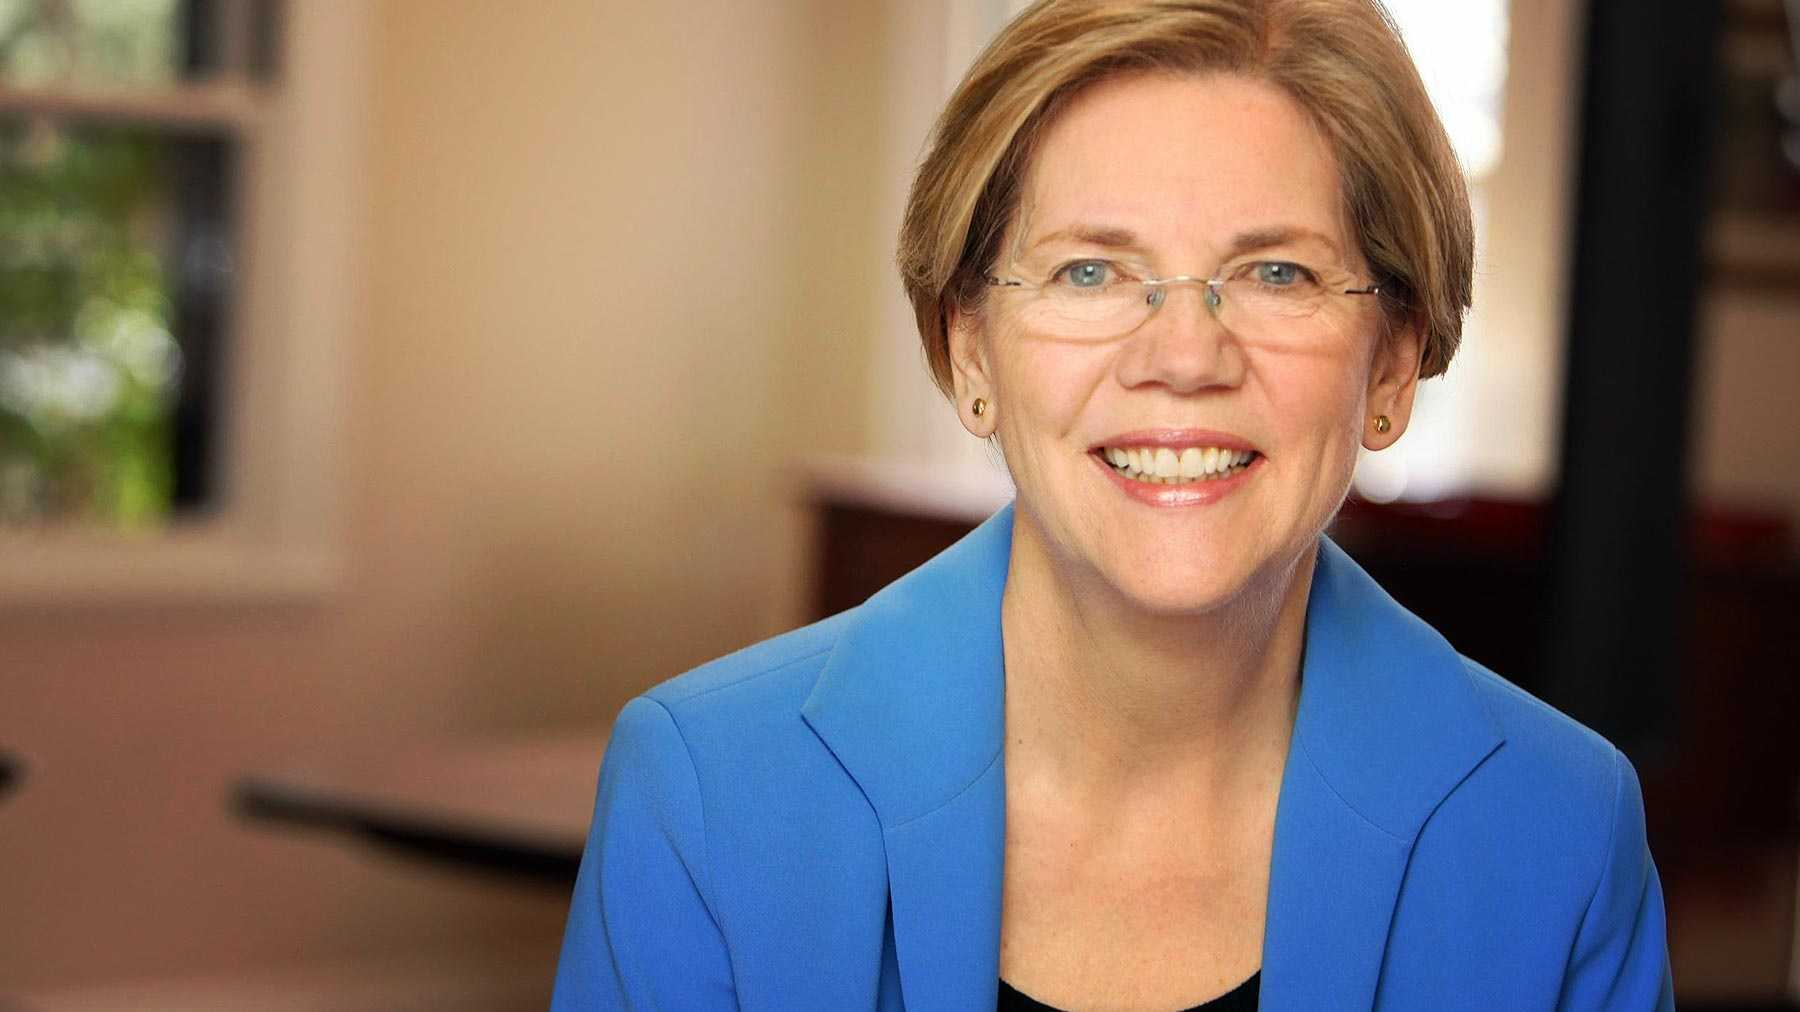 Elizabeth Warren is the senior U.S. Senator from Massachusetts.